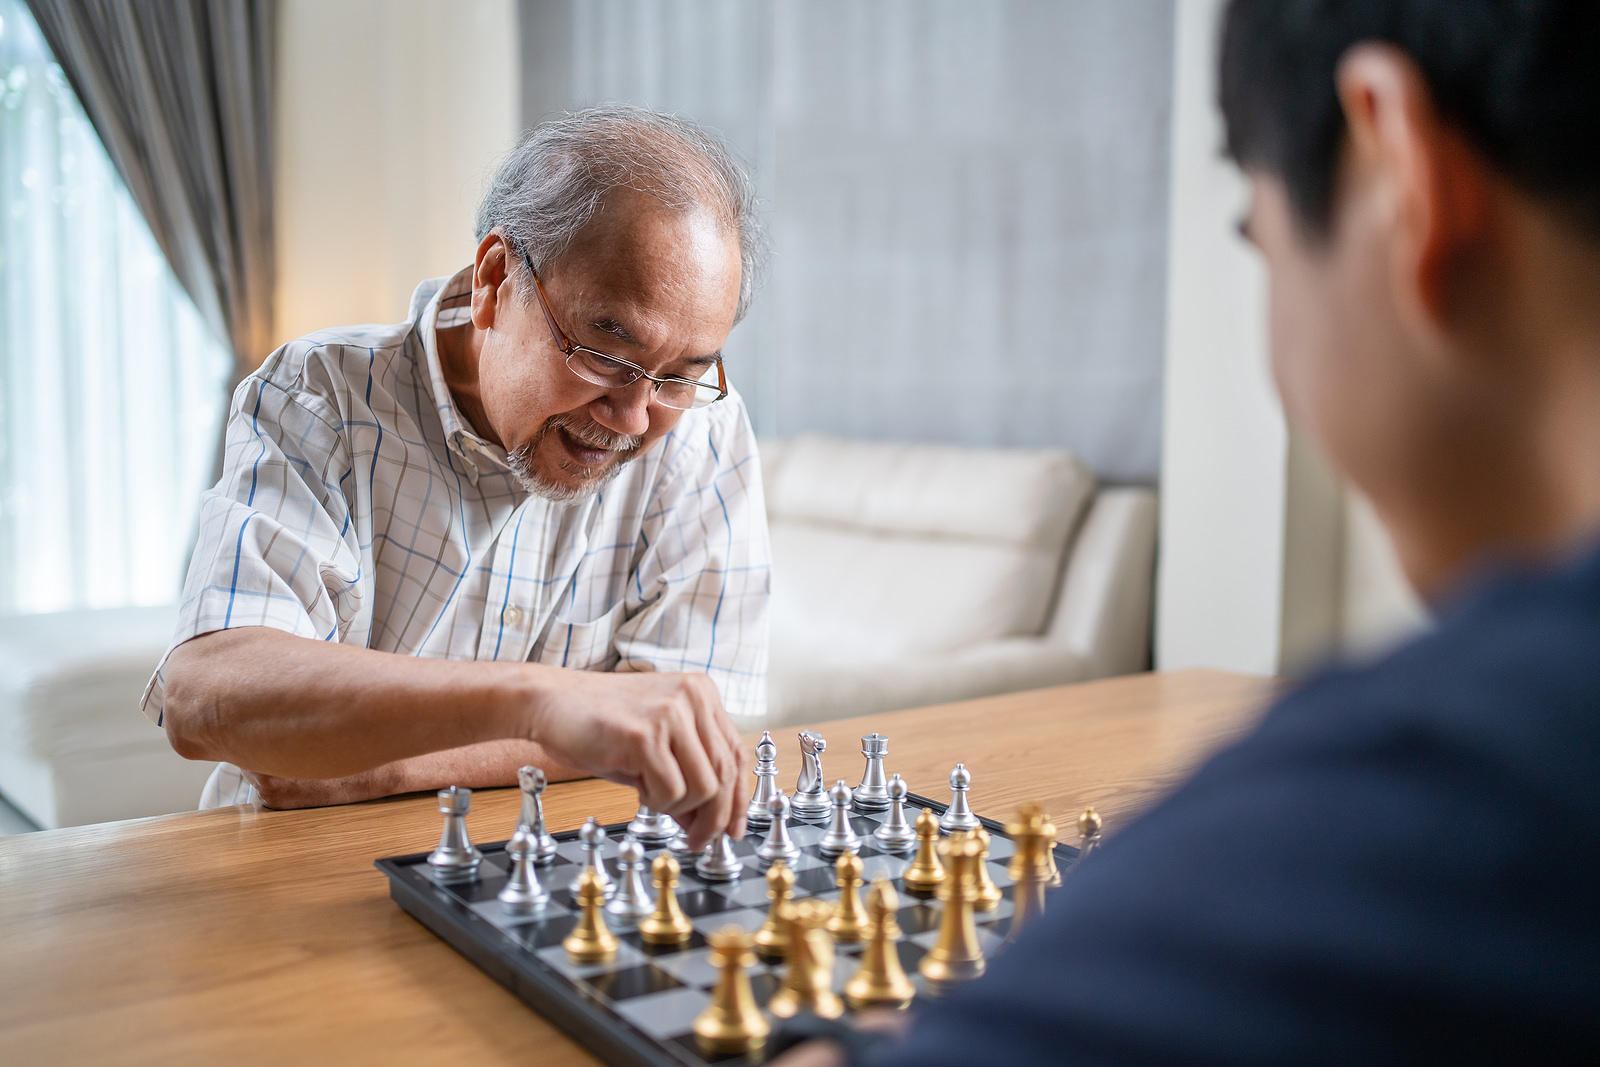 Asian Senior Elderly male spend leisure time, stay home after retirement. Happy smiling Old man enjoy activity in house playing chess game with friend together. Hospital Healthcare and medical concept